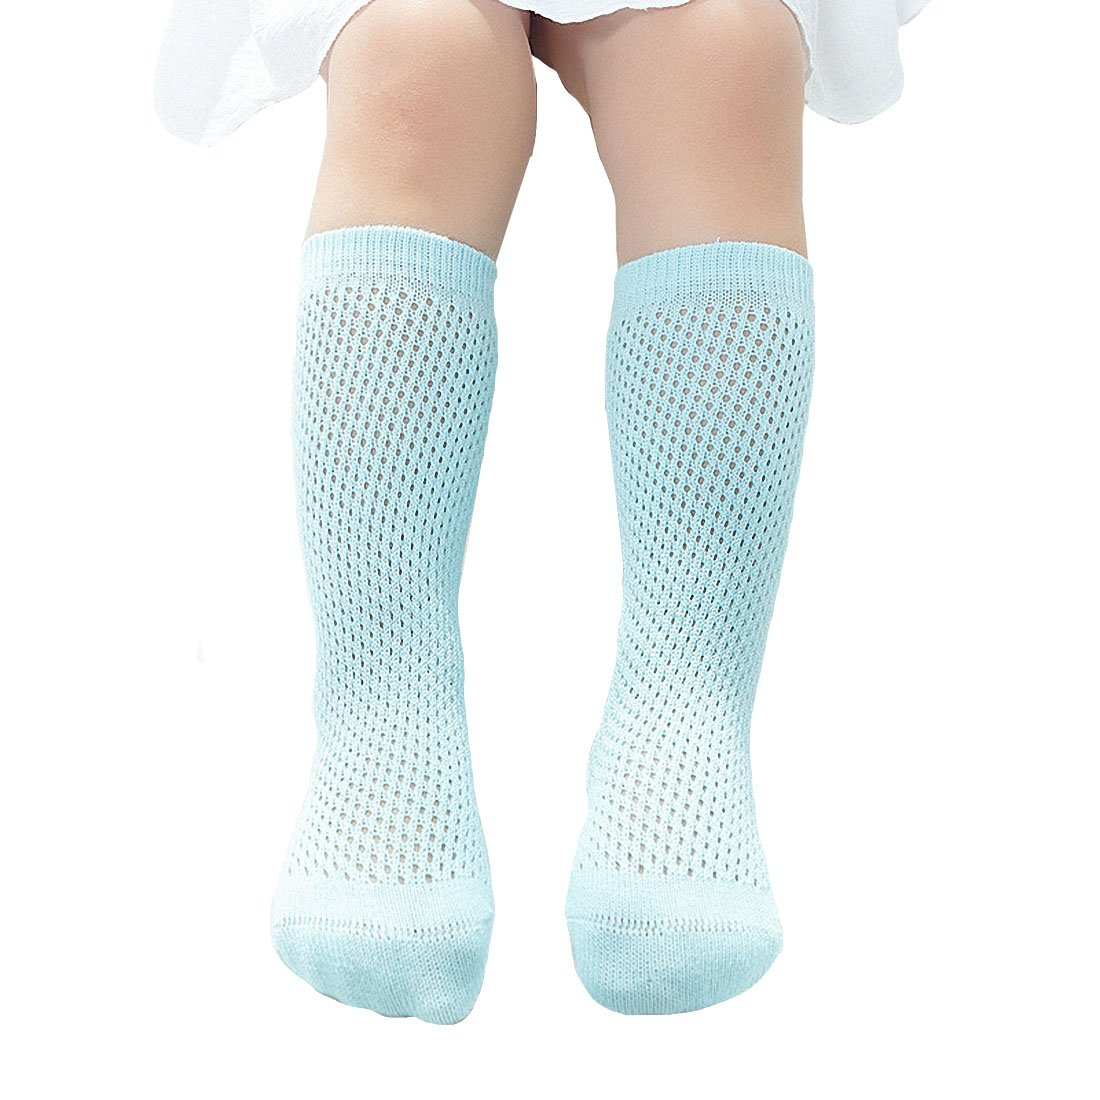 abf2634ef5f Amazon.com  4 Pack Baby Girls Toddler Infants Knee High Stockings Hollow  Out Uniform Ruffled Tube Socks  Clothing